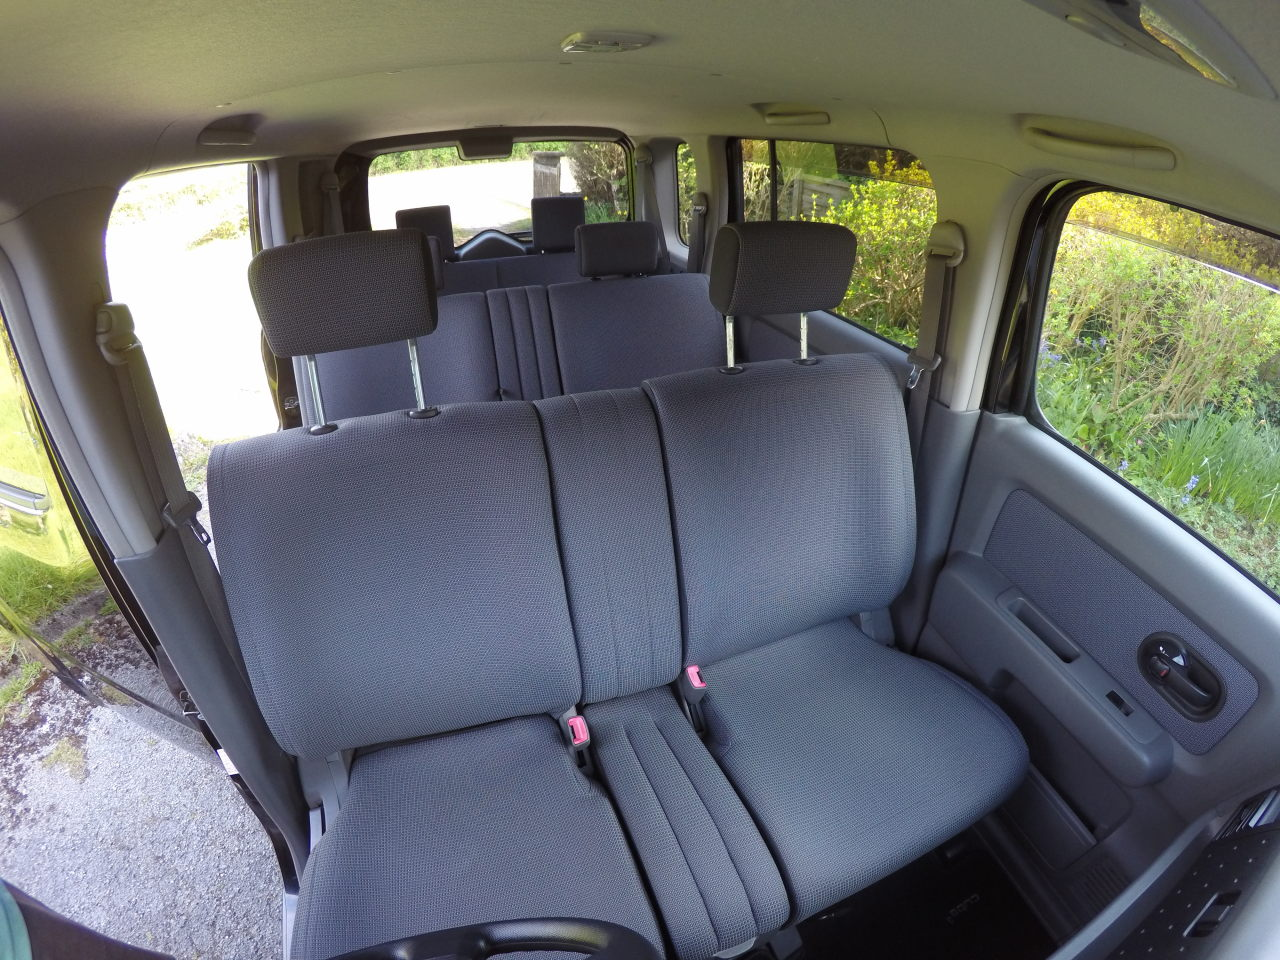 Nissan Cubic Review Andrews Japanese Cars Cube Fuse Box Picture Of 3 Rows Seats In A Interior Accommodation